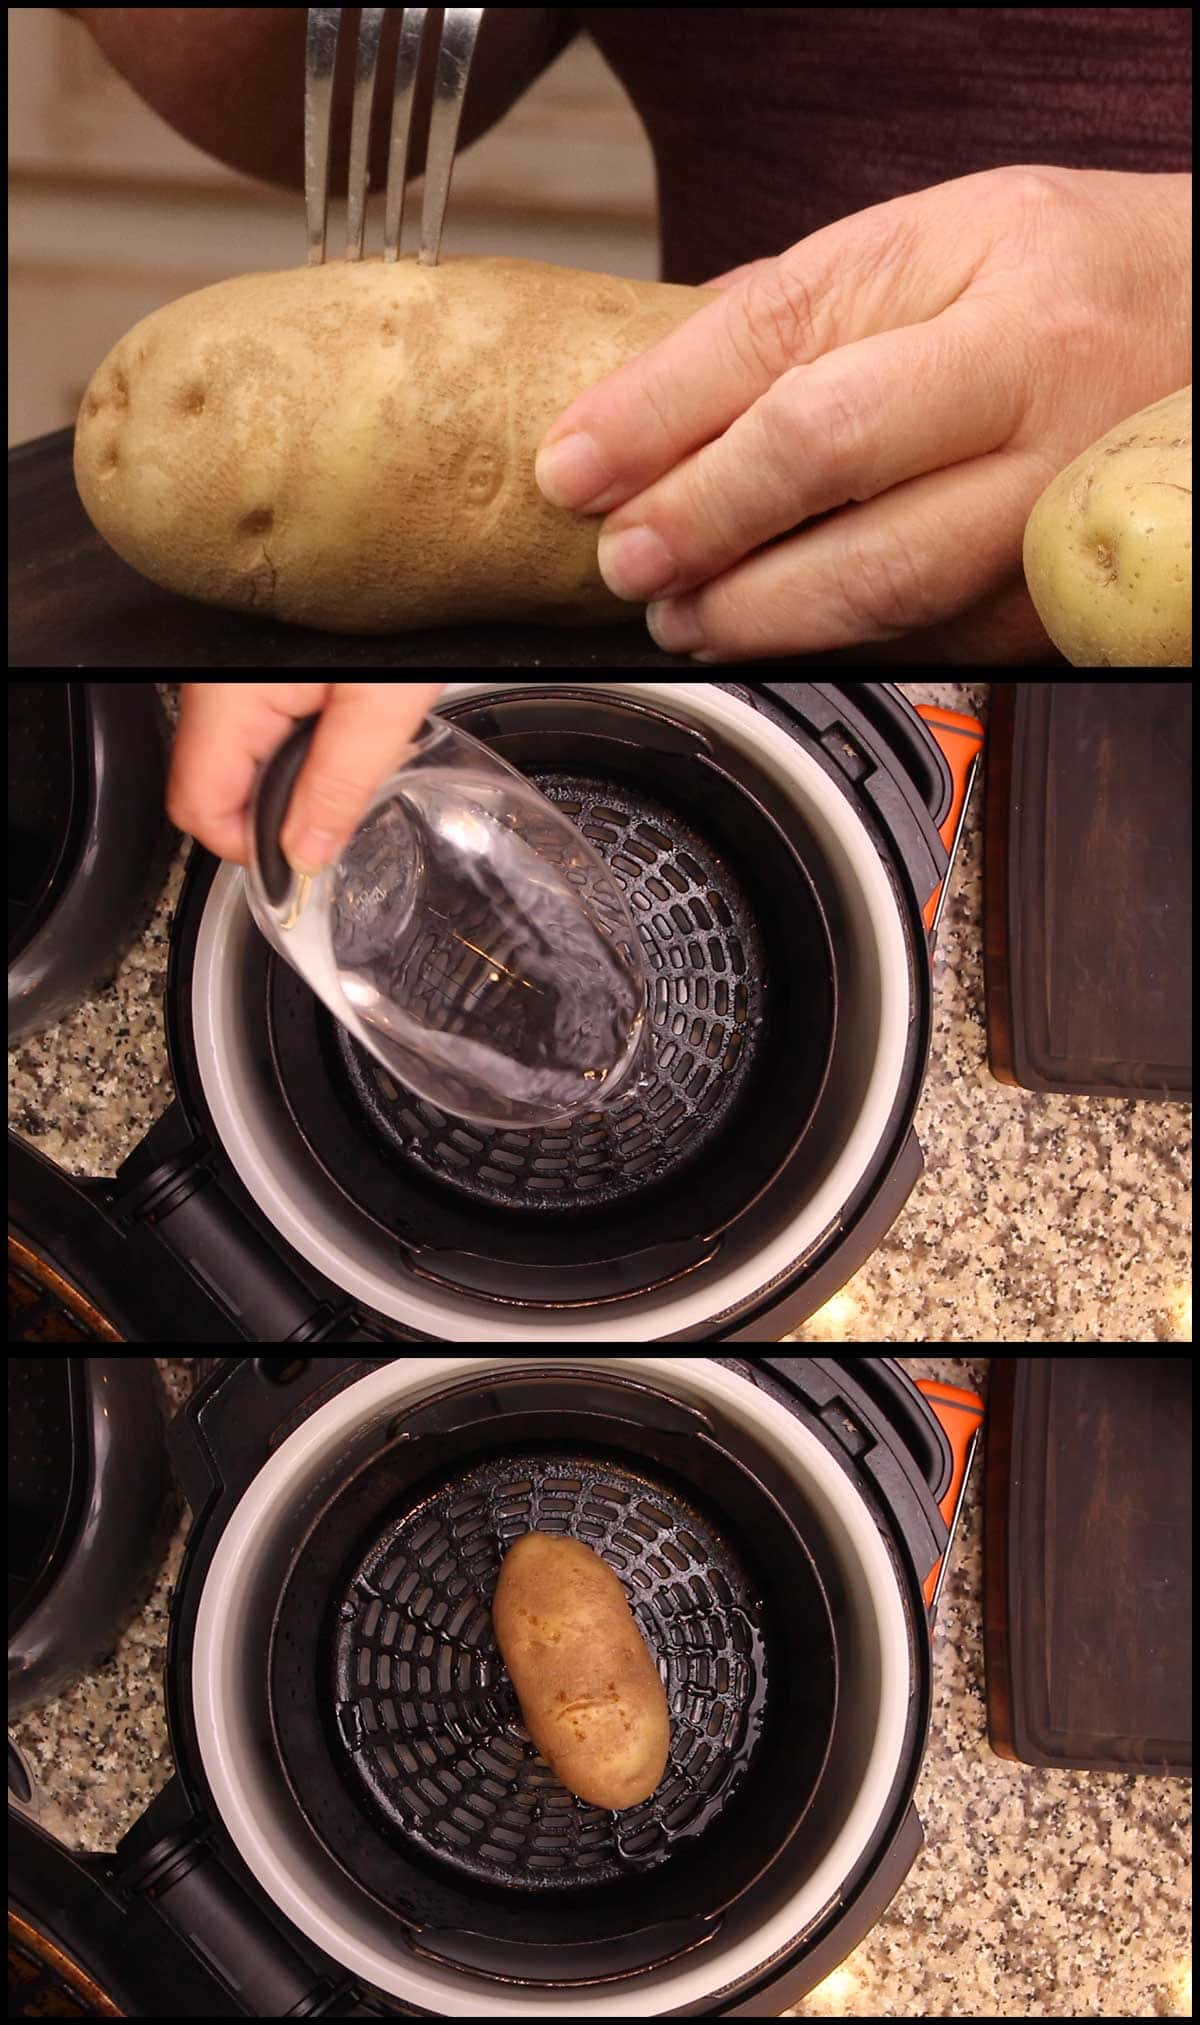 poking holes in potato and putting water and potato into the pressure cooker for cooking